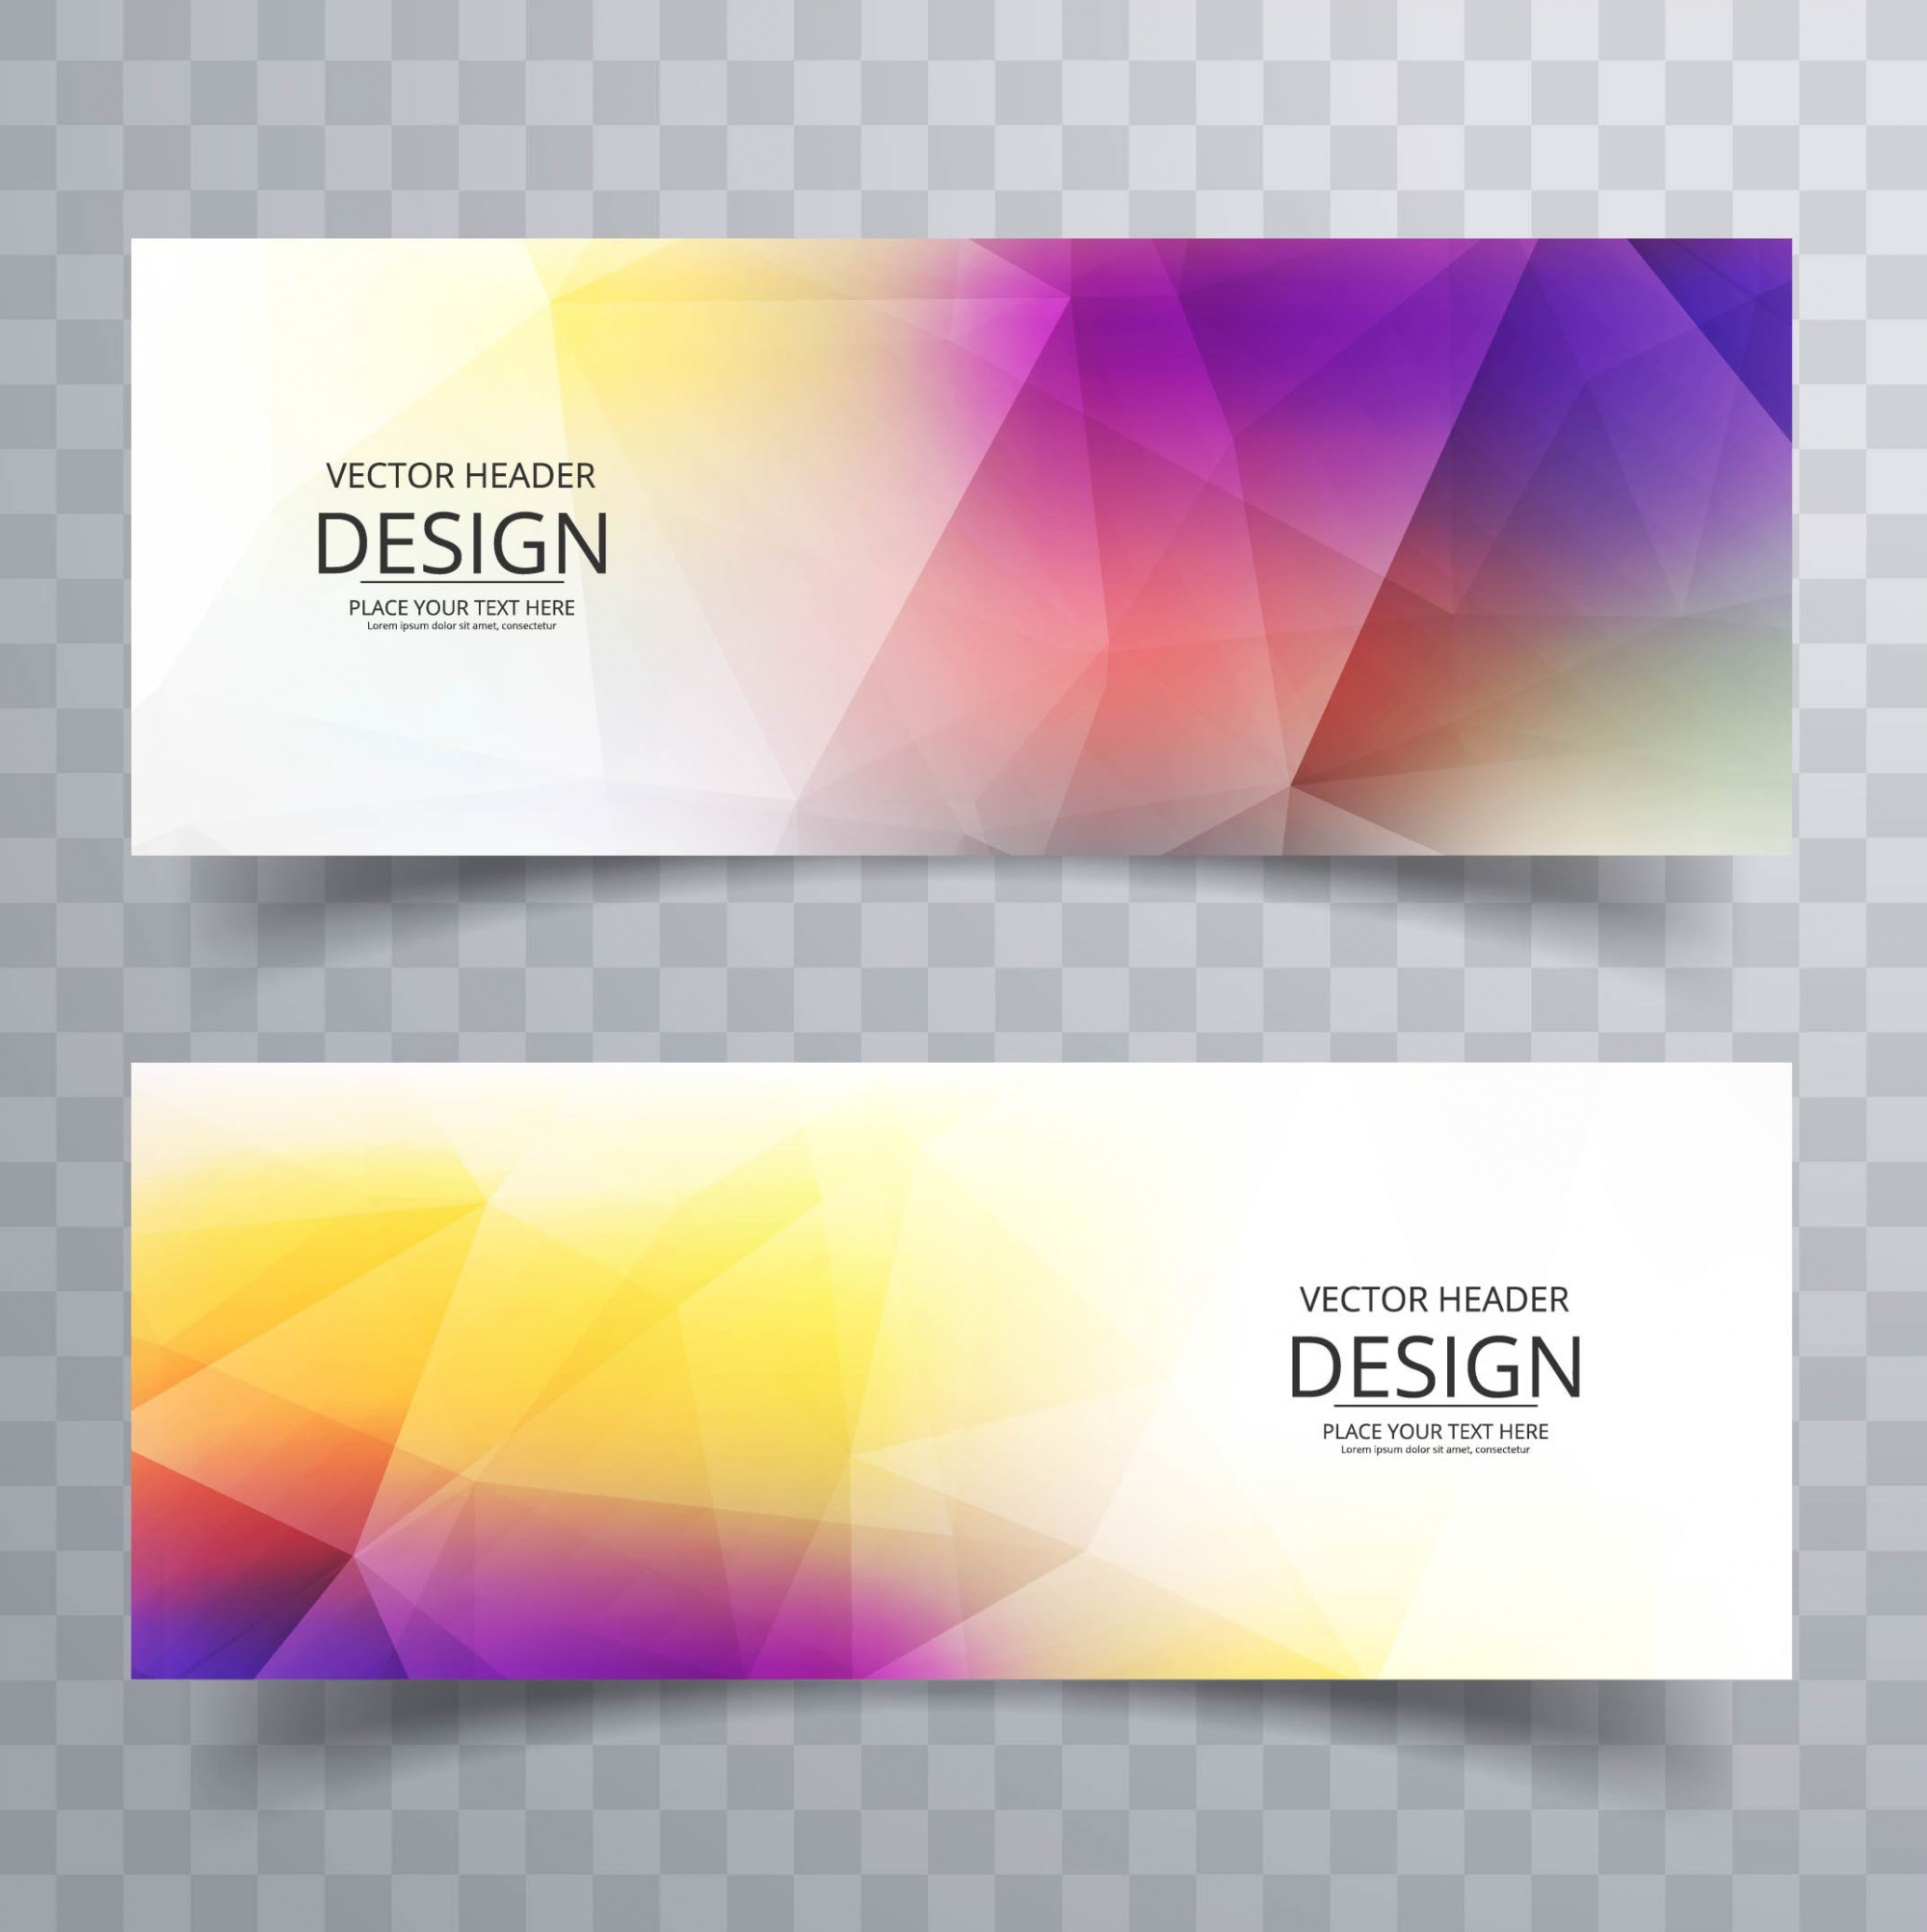 Banner design with colorful polygonal shapes